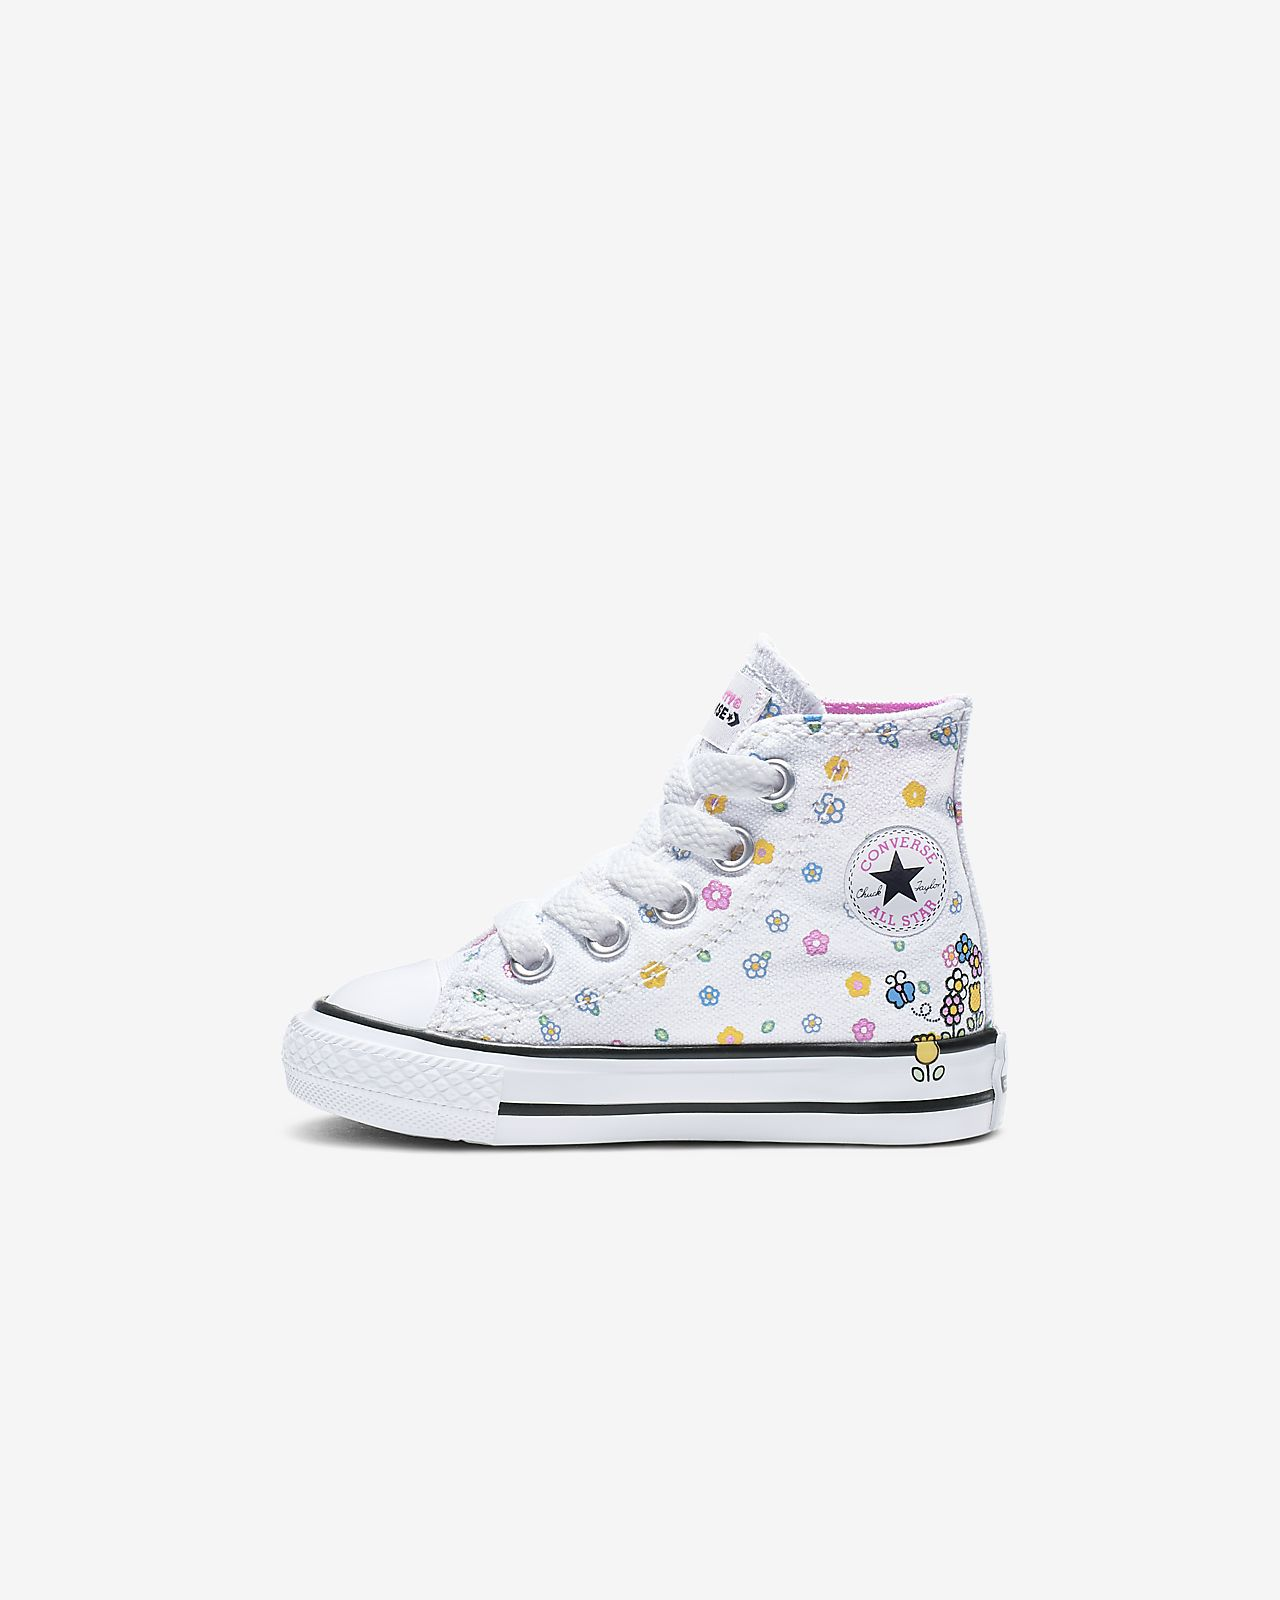 Converse x Hello Kitty Chuck Taylor All Star High Top Baby Shoe